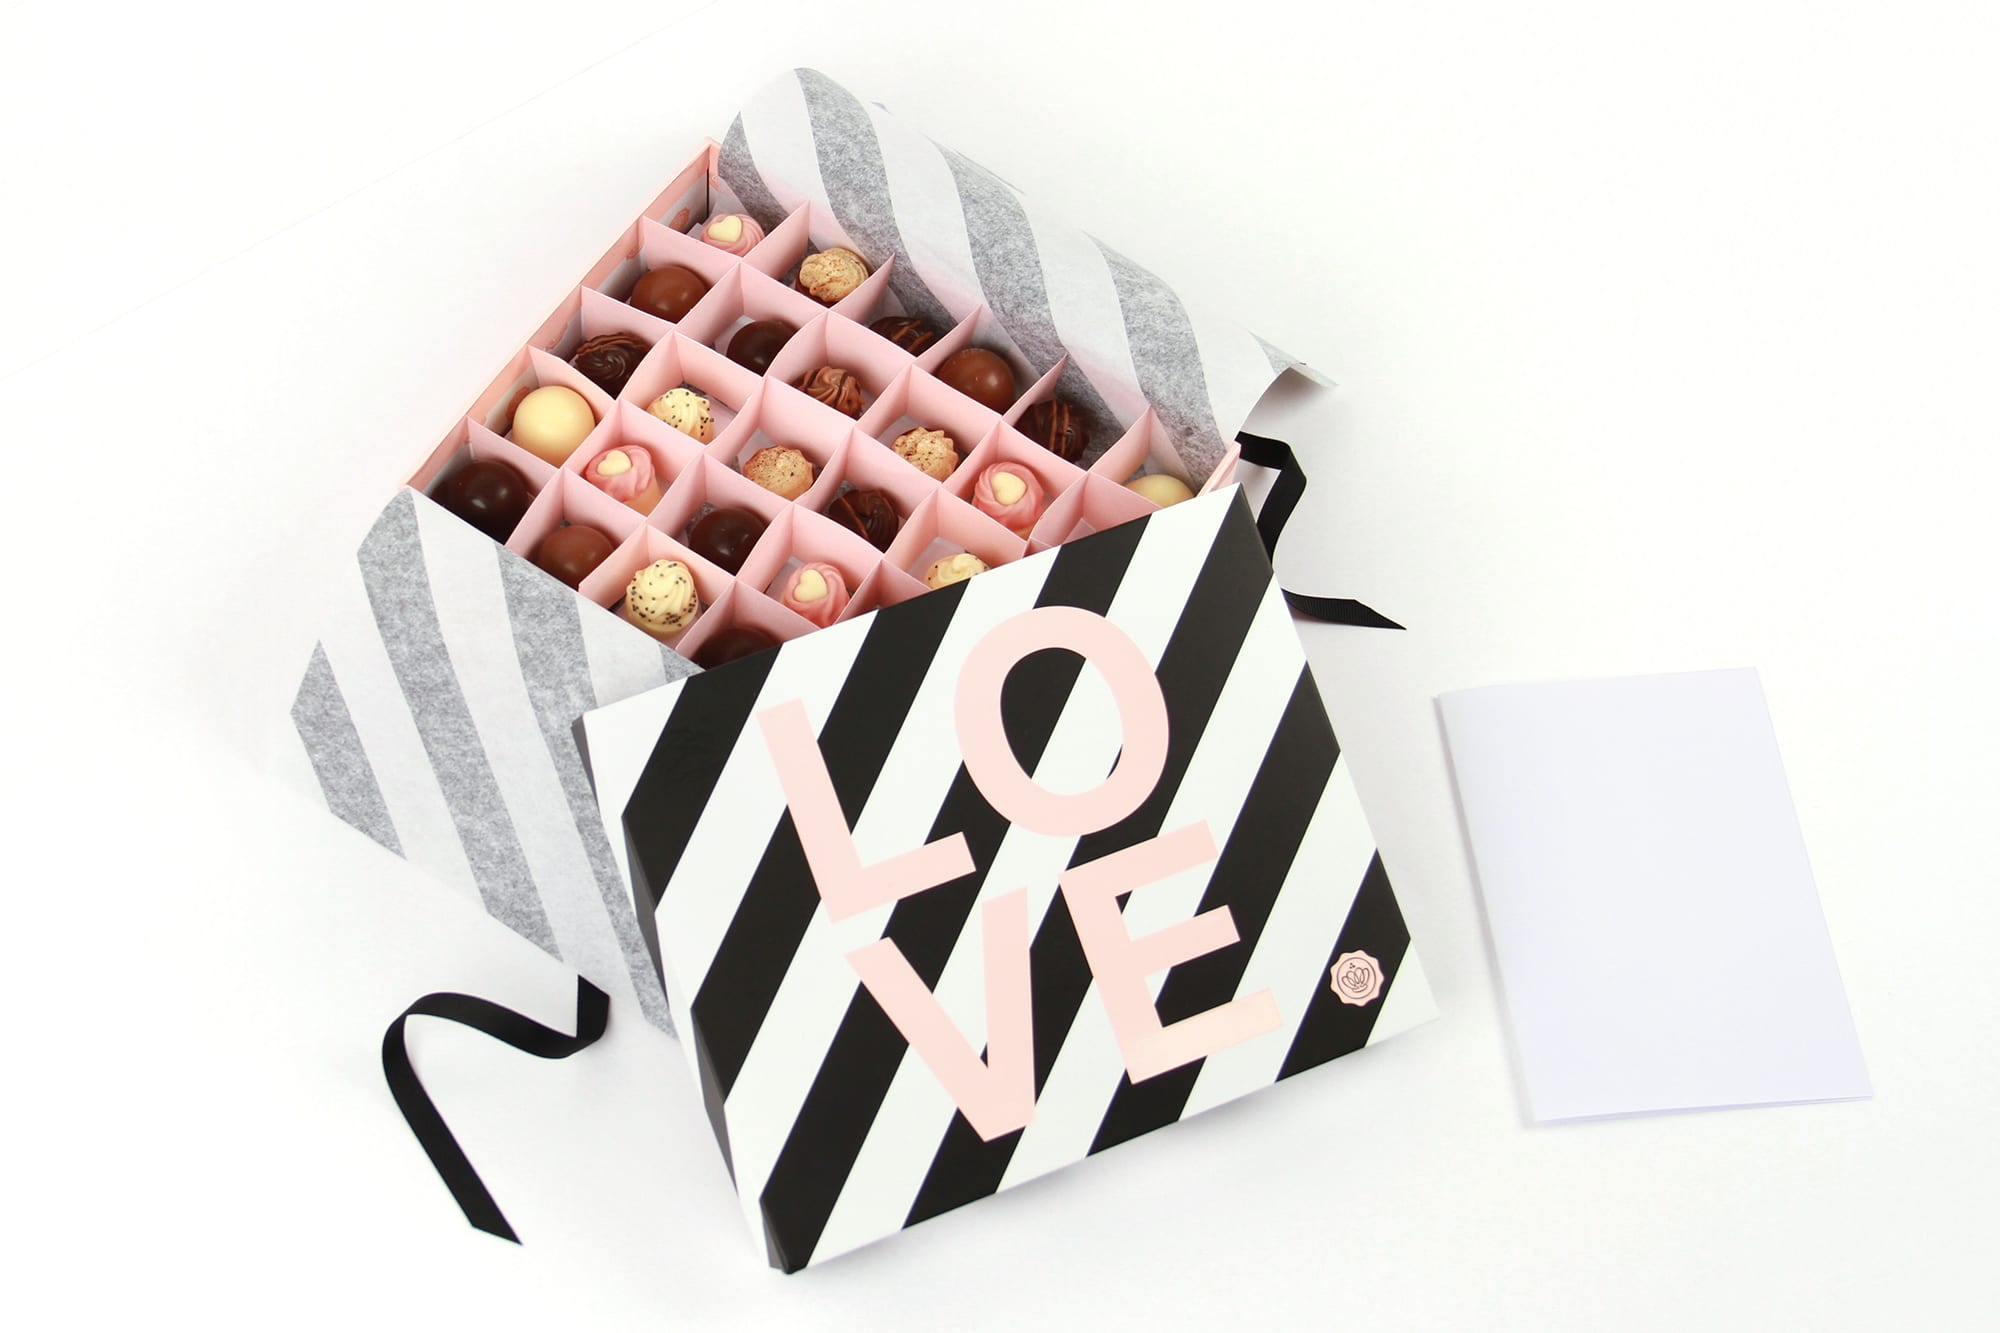 Upscale Your GLOSSYBOX: Chocolate Box